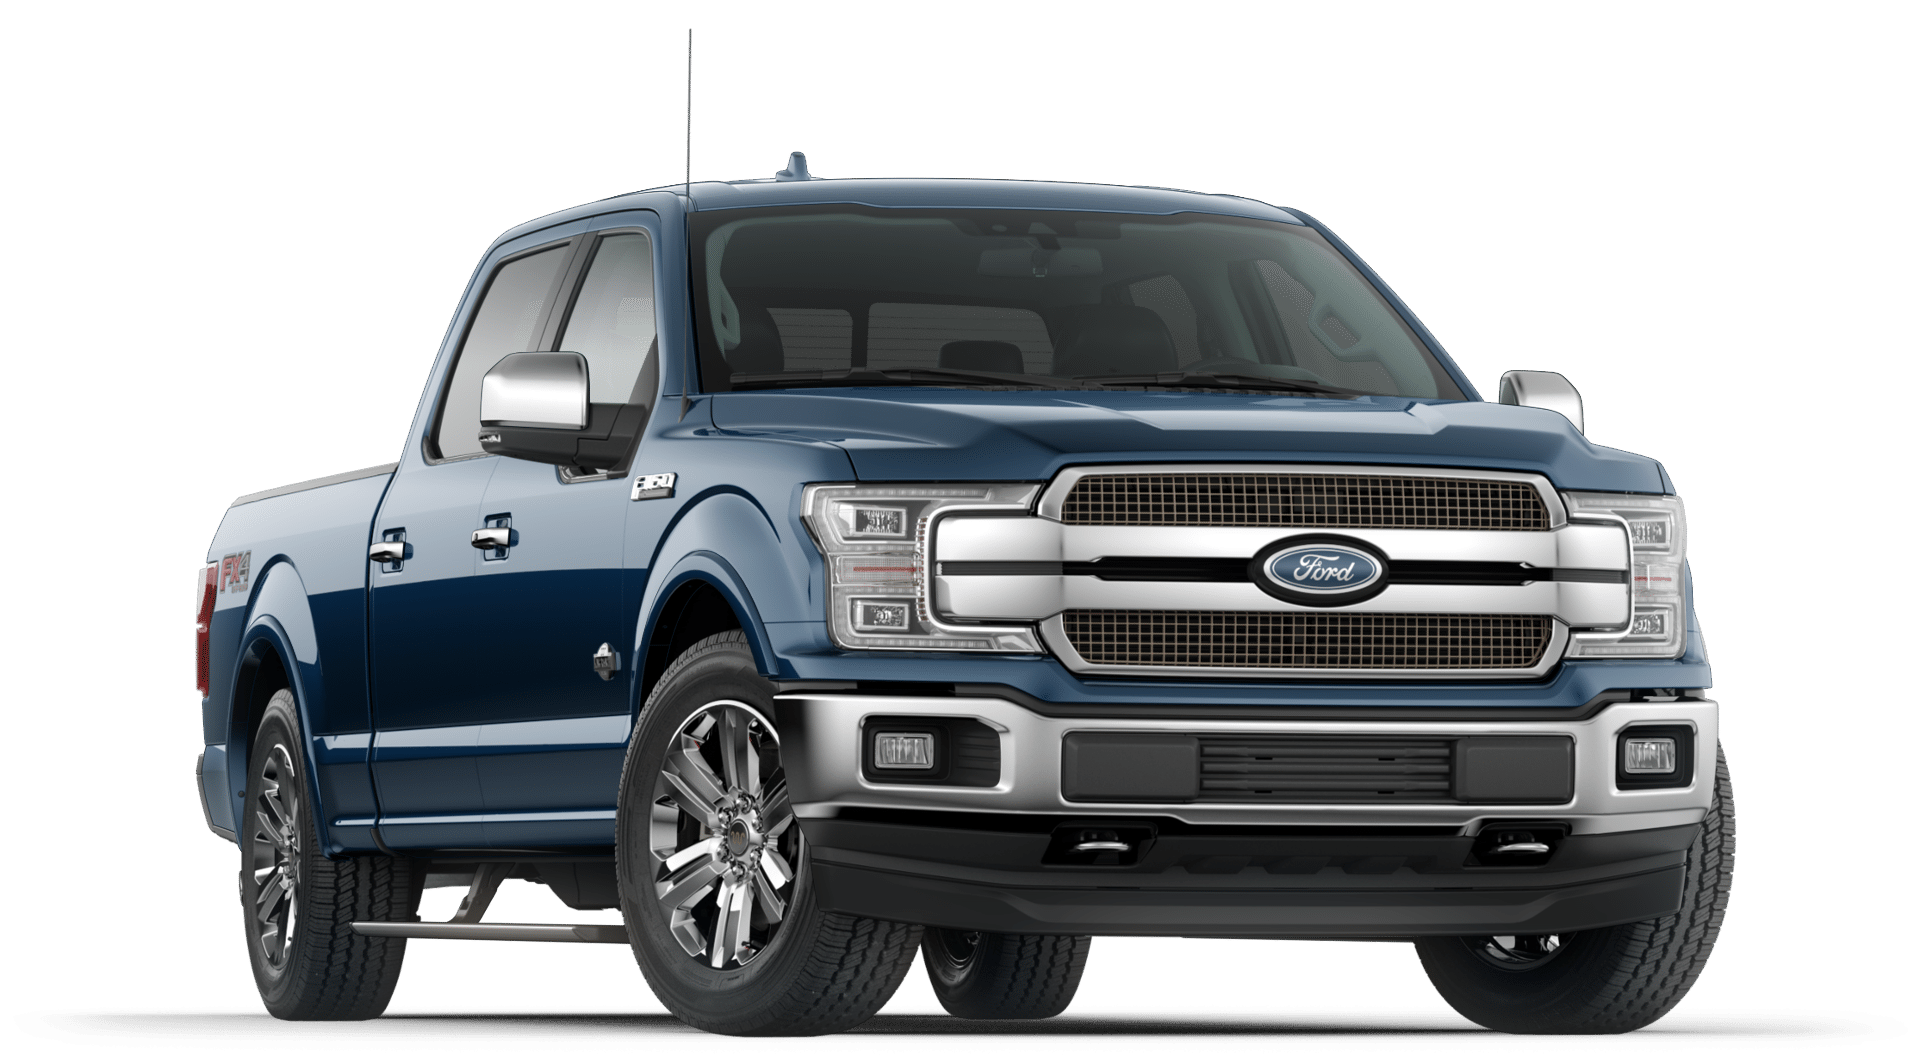 2019 Ford F 150 Build Price Ford Commercial Vehicle Car Ford